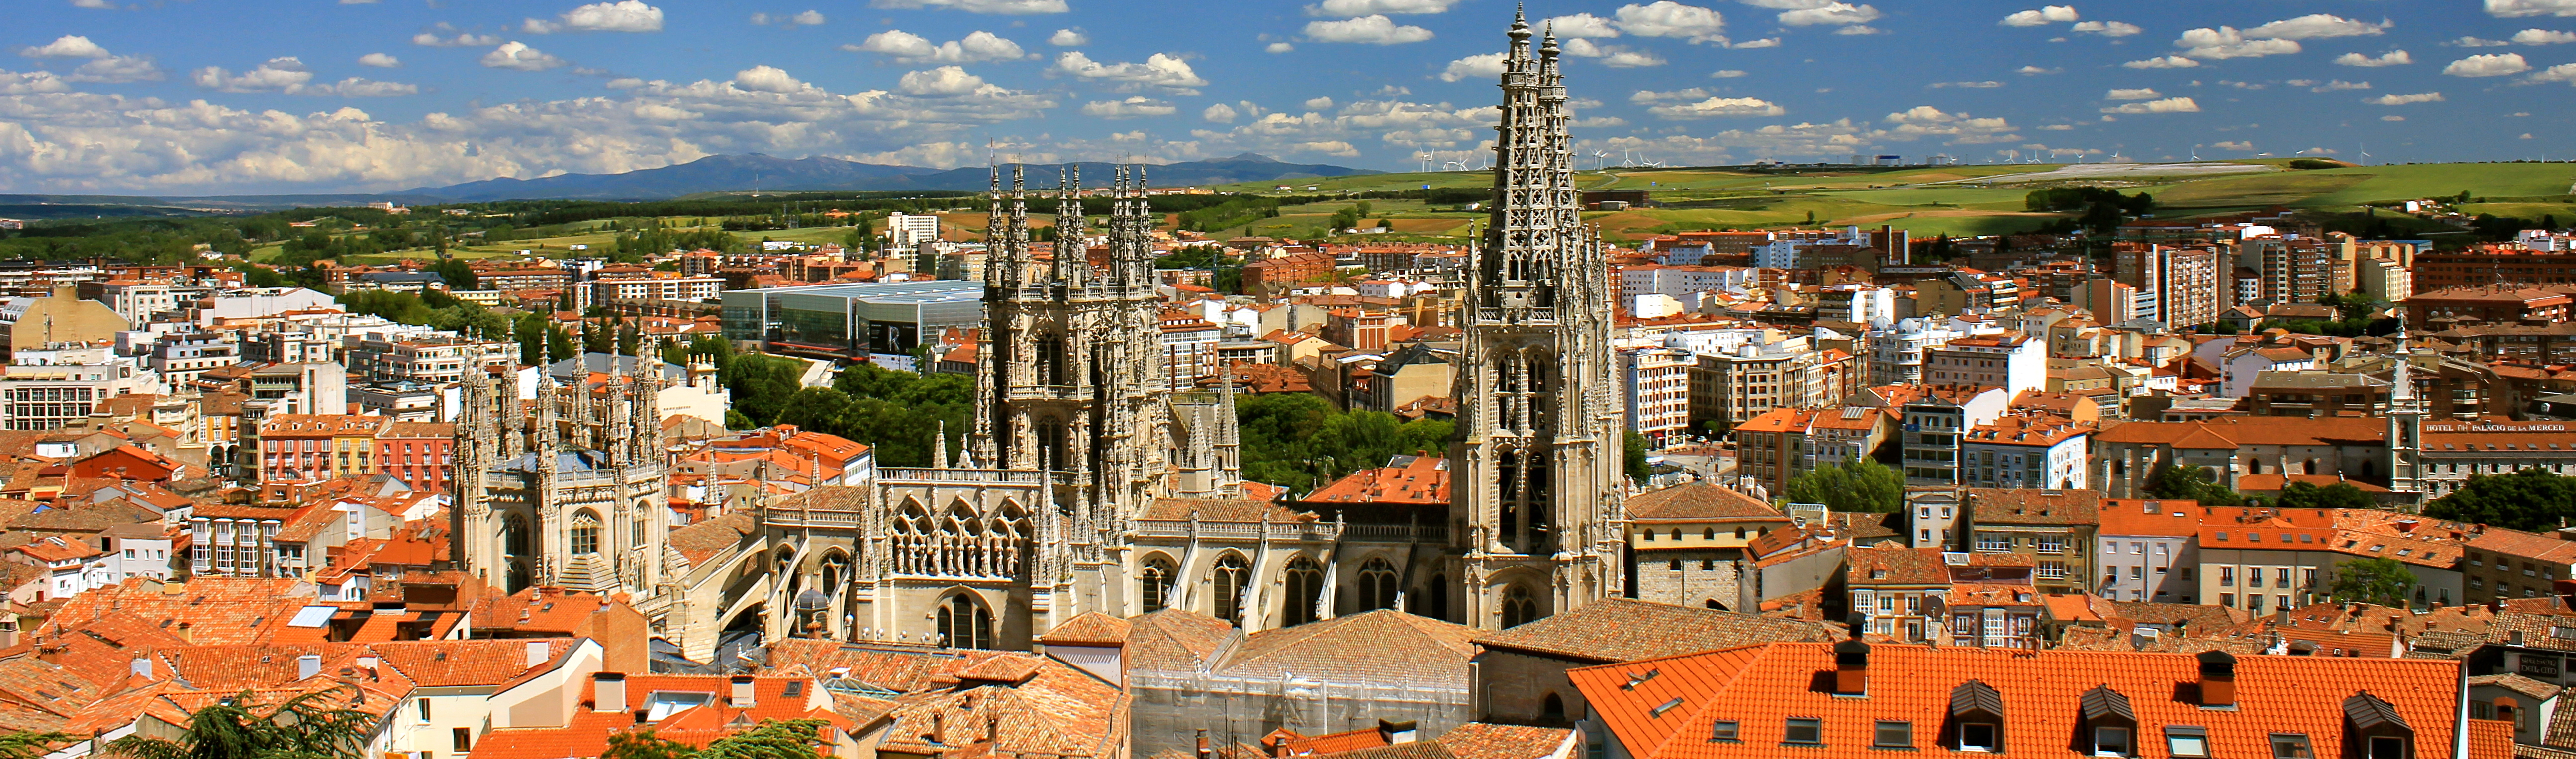 http://upload.wikimedia.org/wikipedia/commons/e/e6/Panoramic_of_Burgos_facing_south-east.jpg